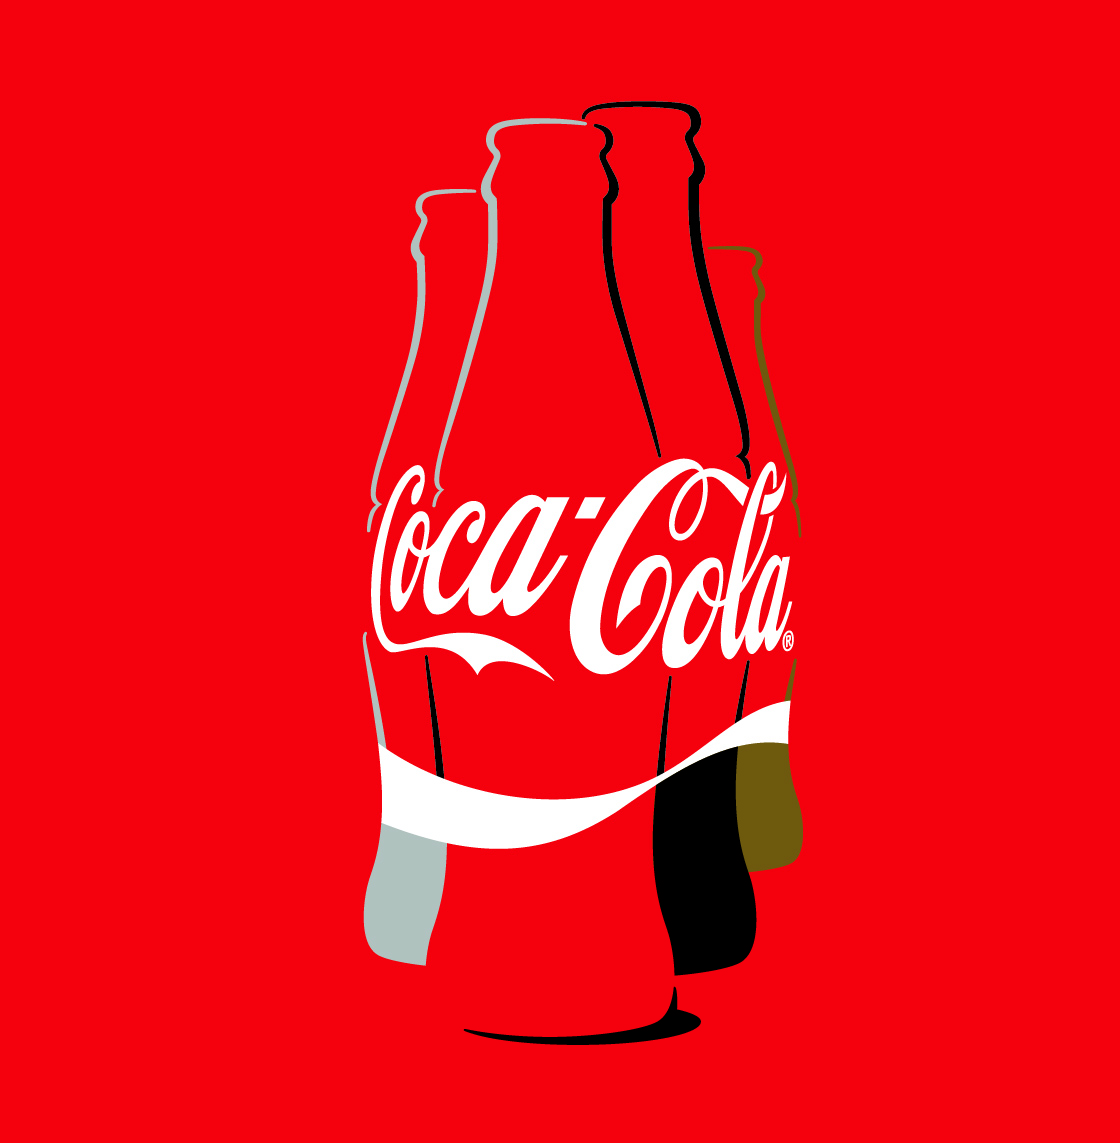 Coca-Cola unveils its new strategy in Spain on Packaging of